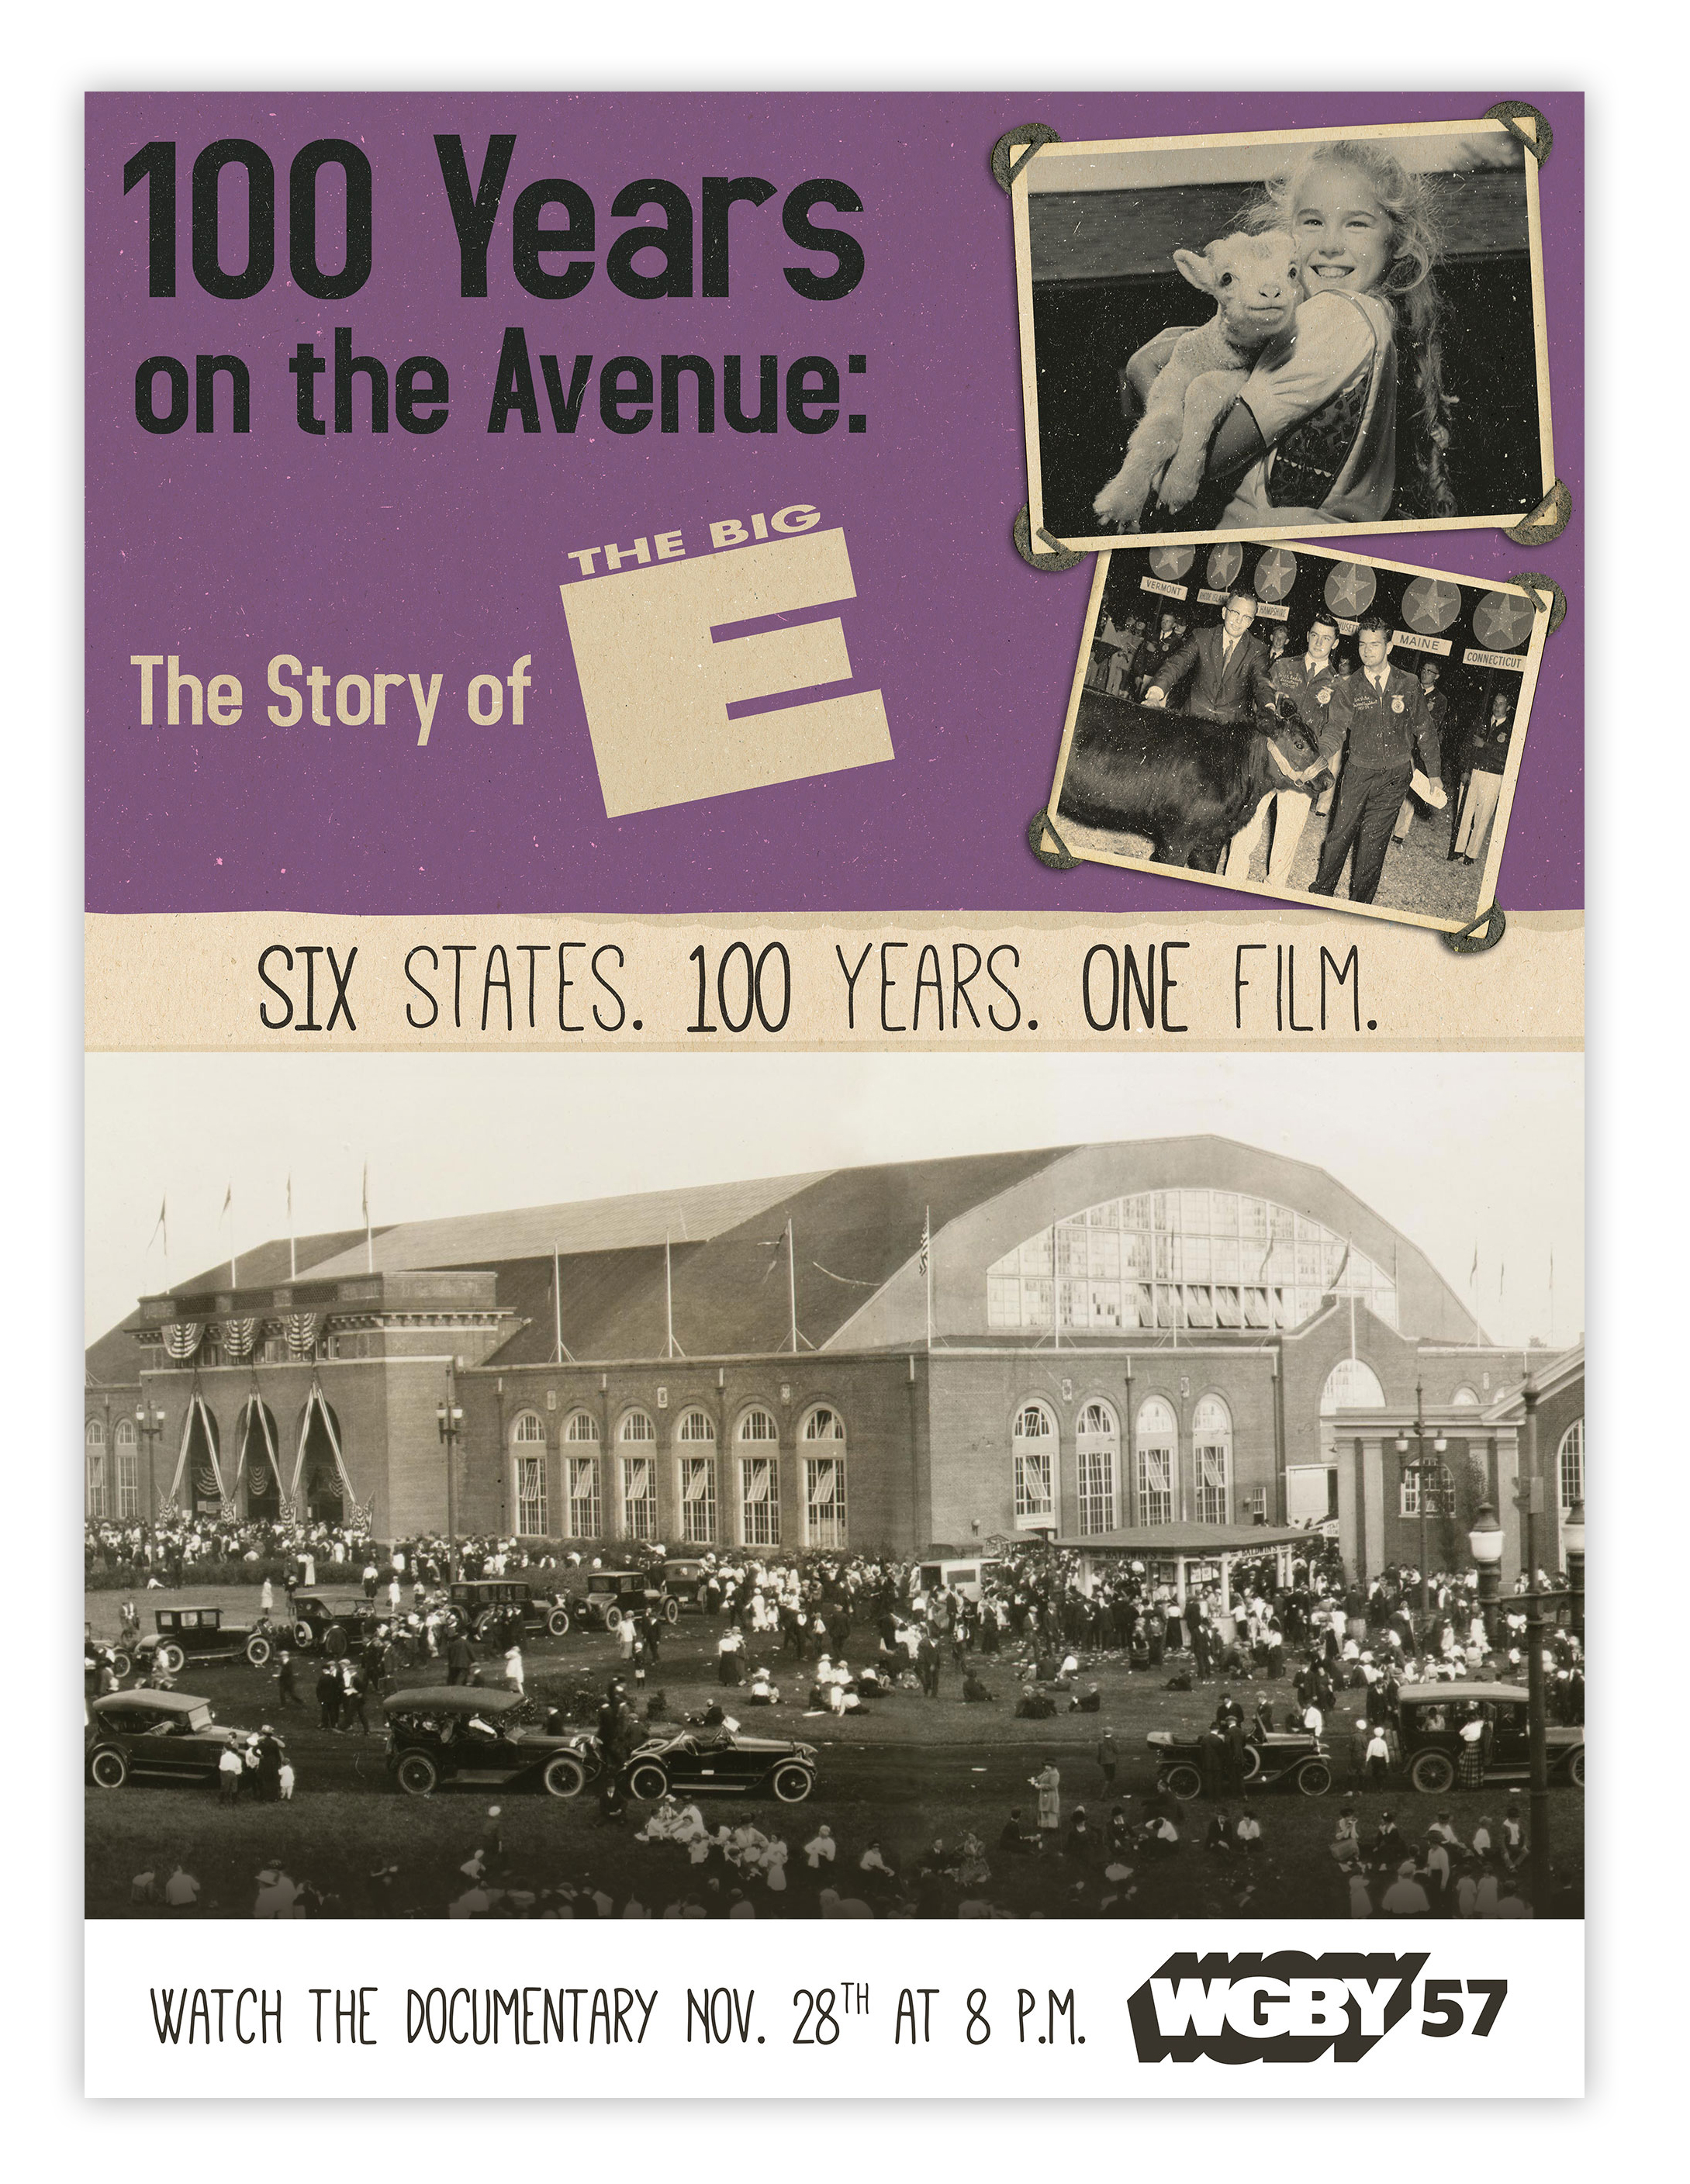 100 Years on the Avenue: The Story of the Big E (PBS Documentary)